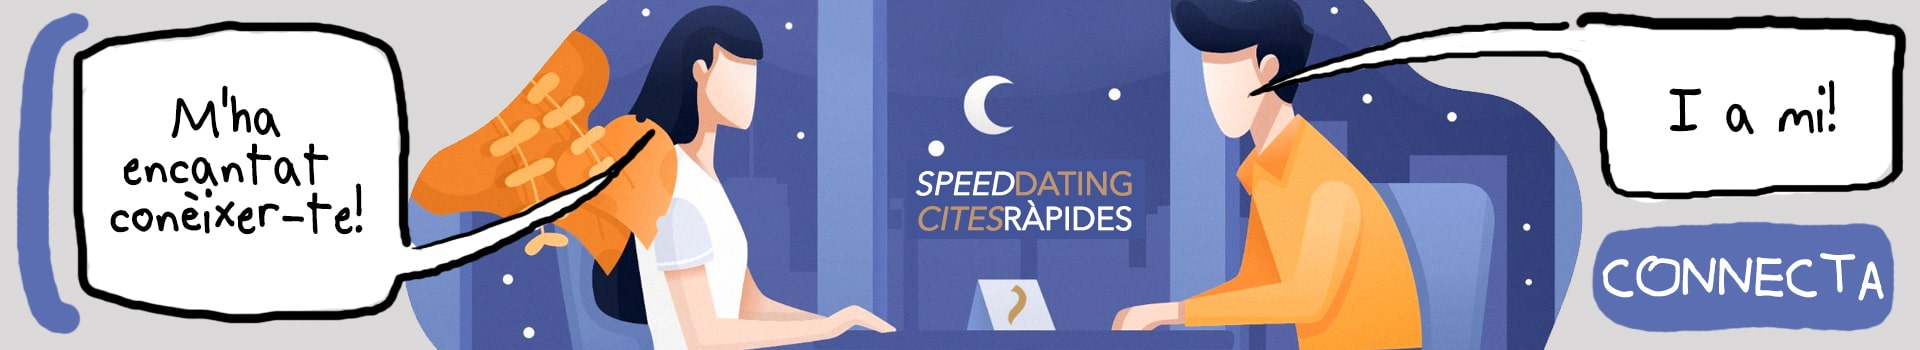 Speed dating Barcelona